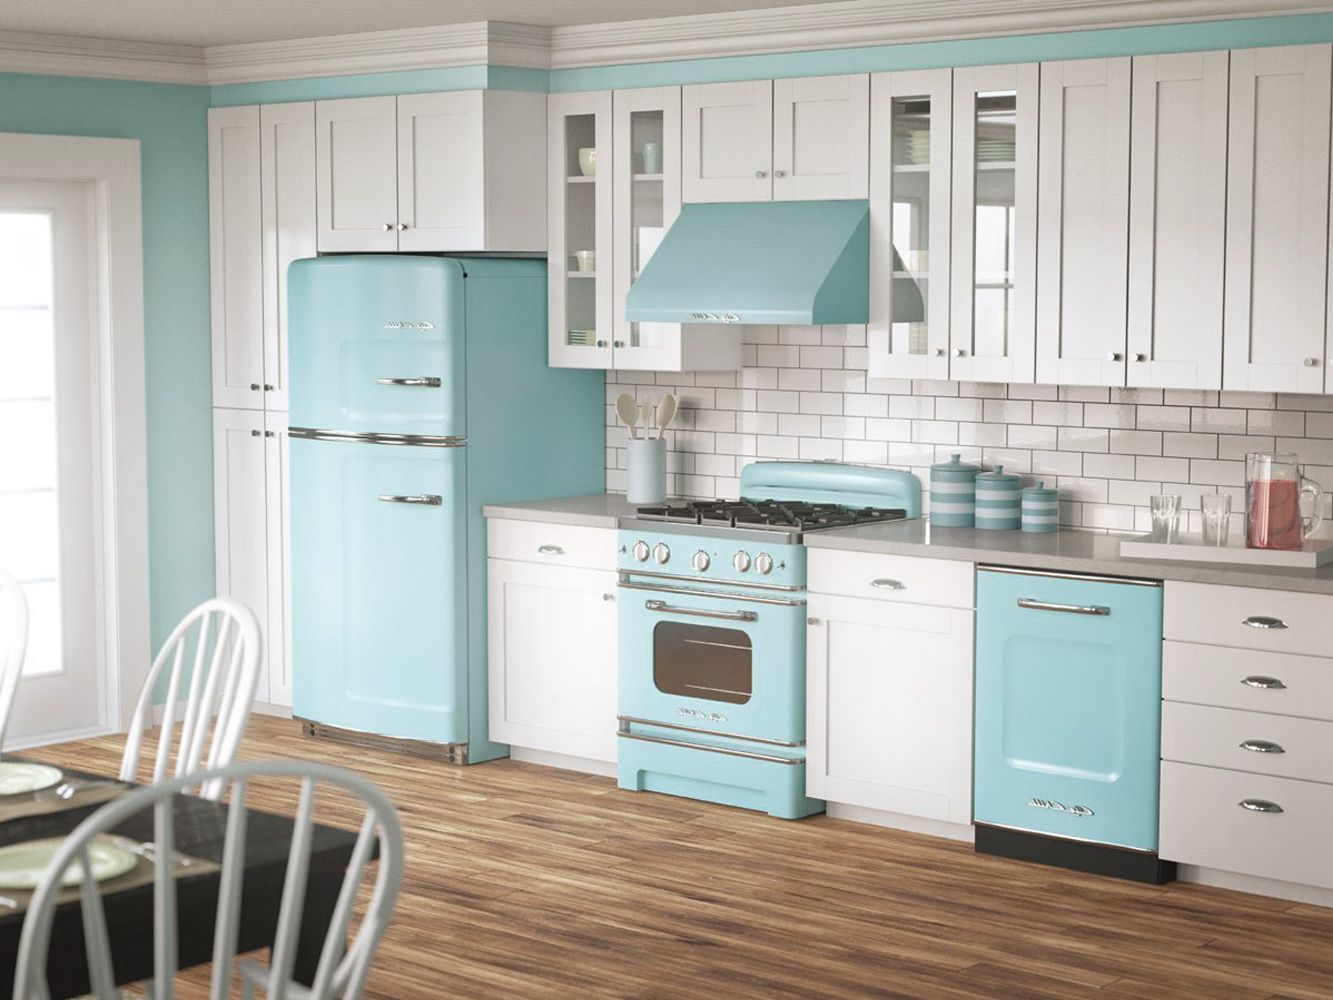 1950s Home Decor Pastel Colors Kitchen Interior ideas | Home Design ...